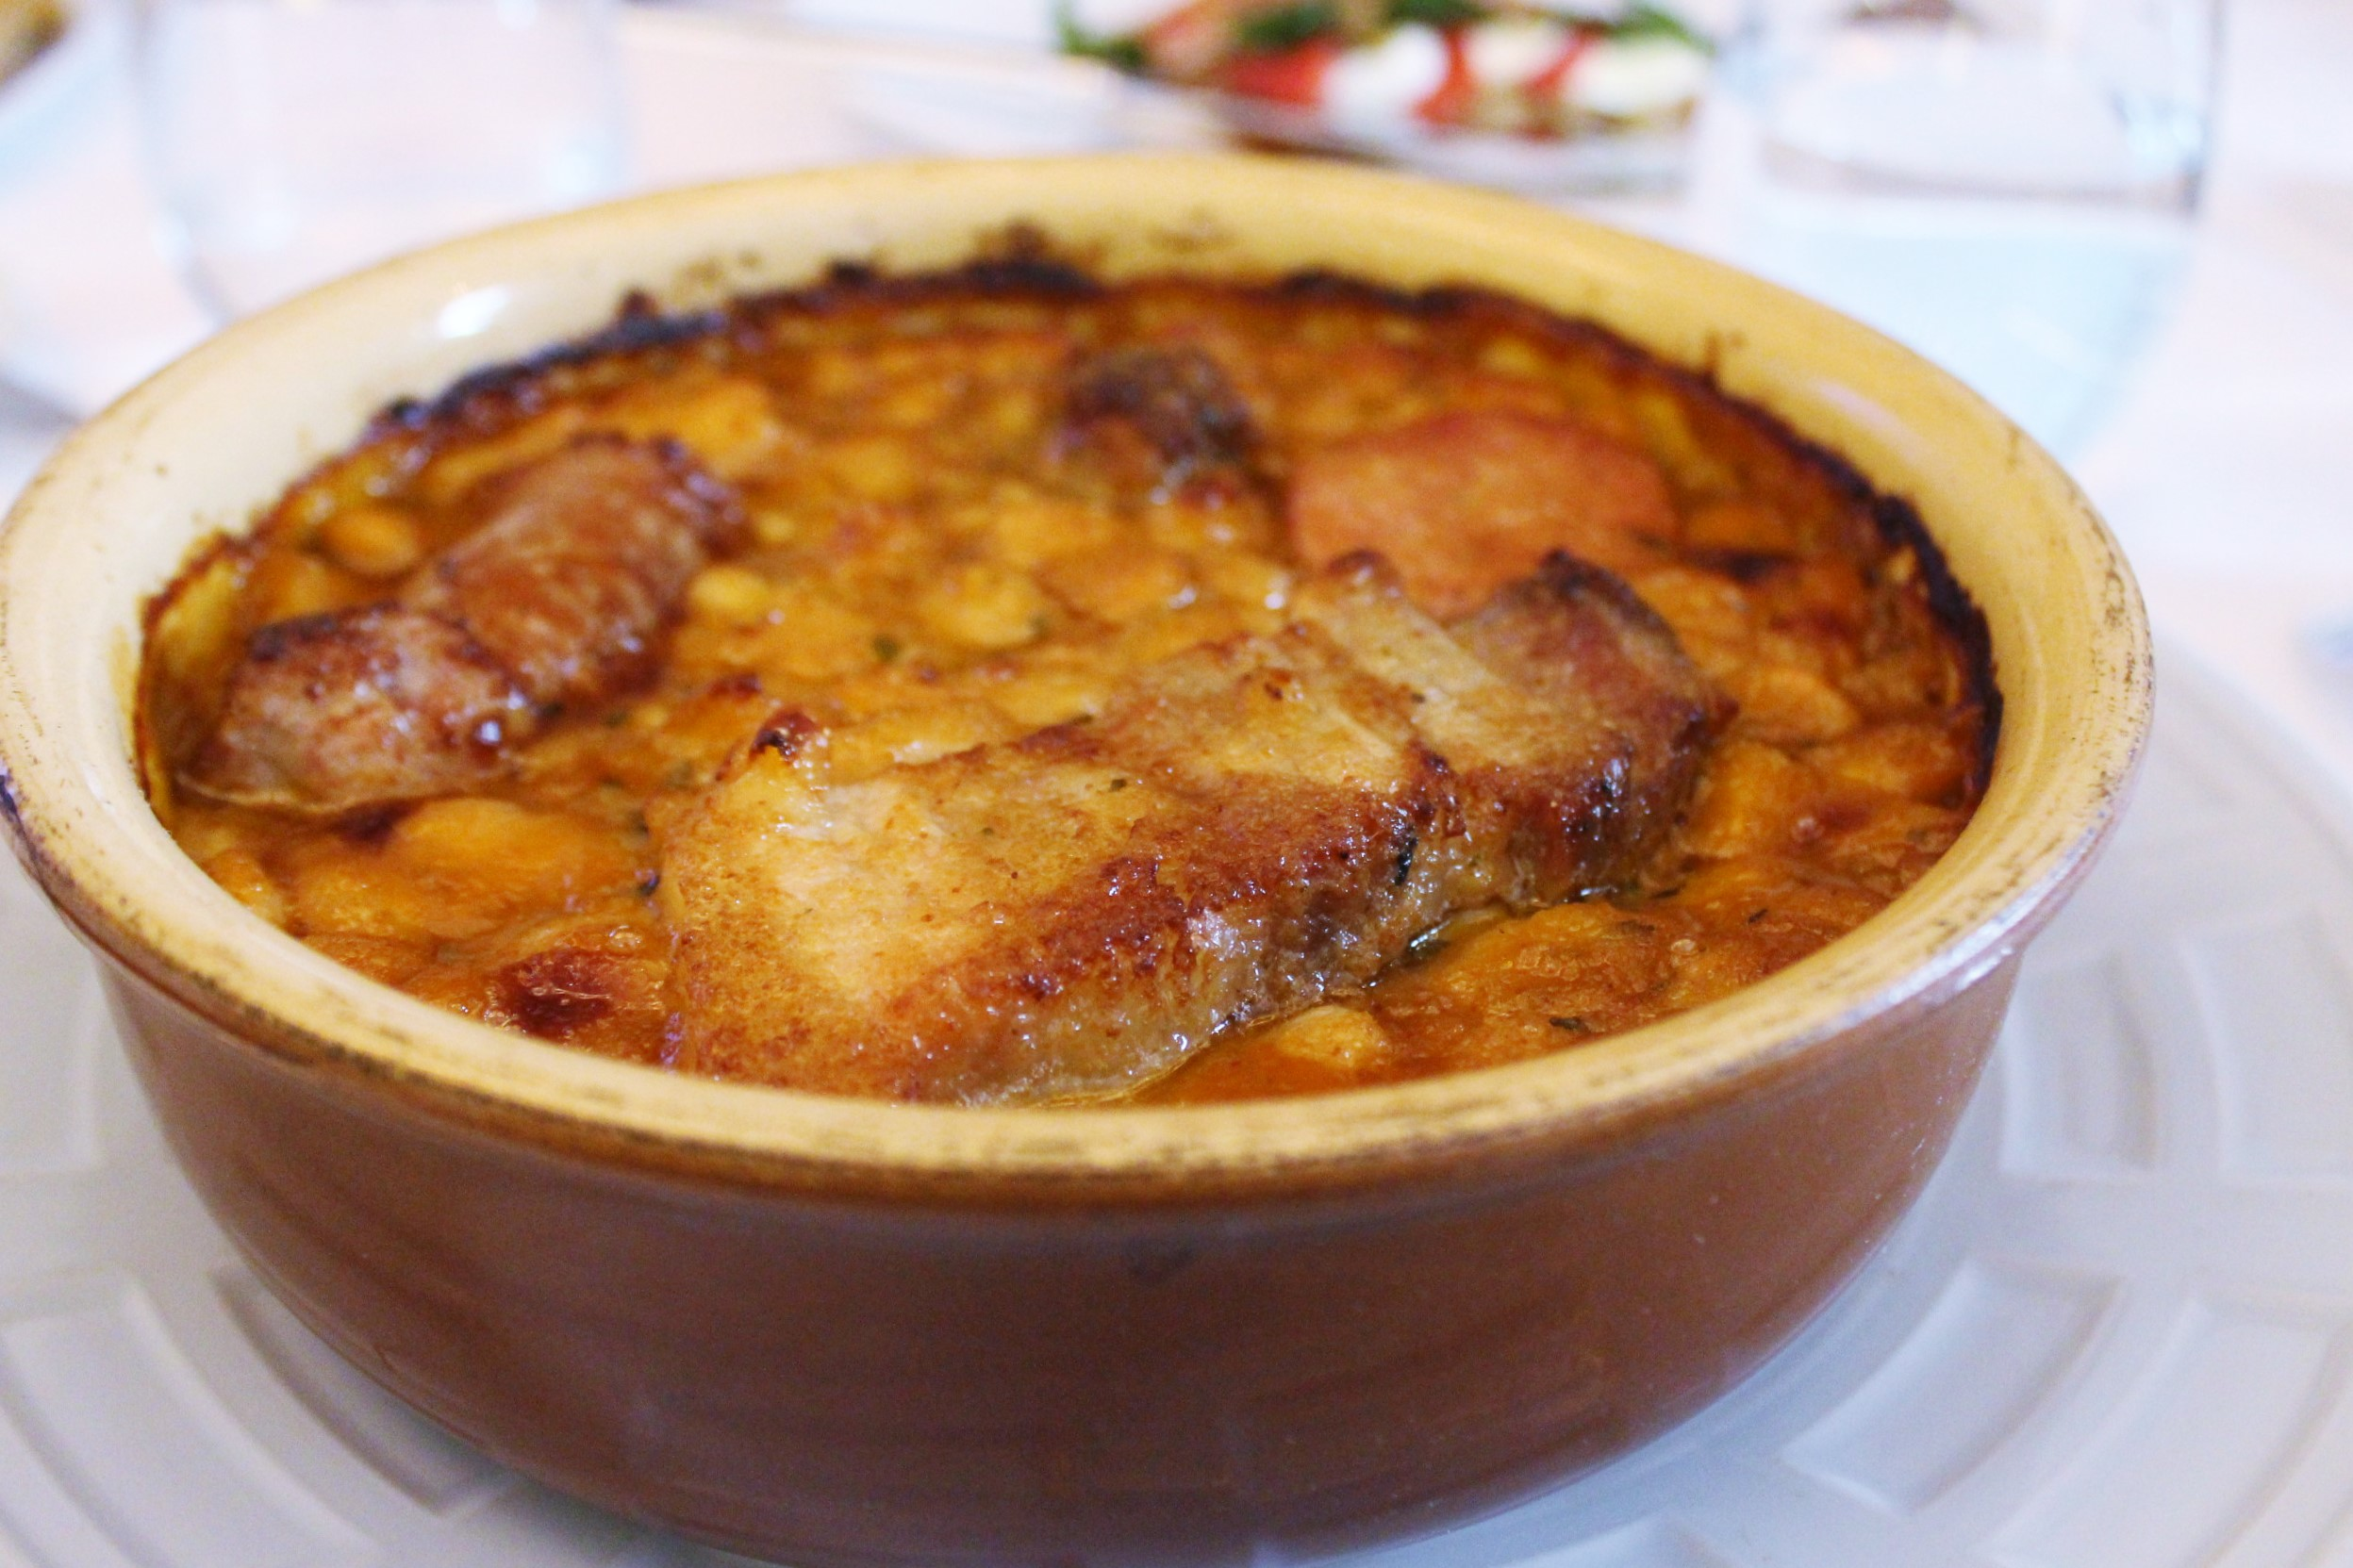 Cassoulet from my region of Montauban